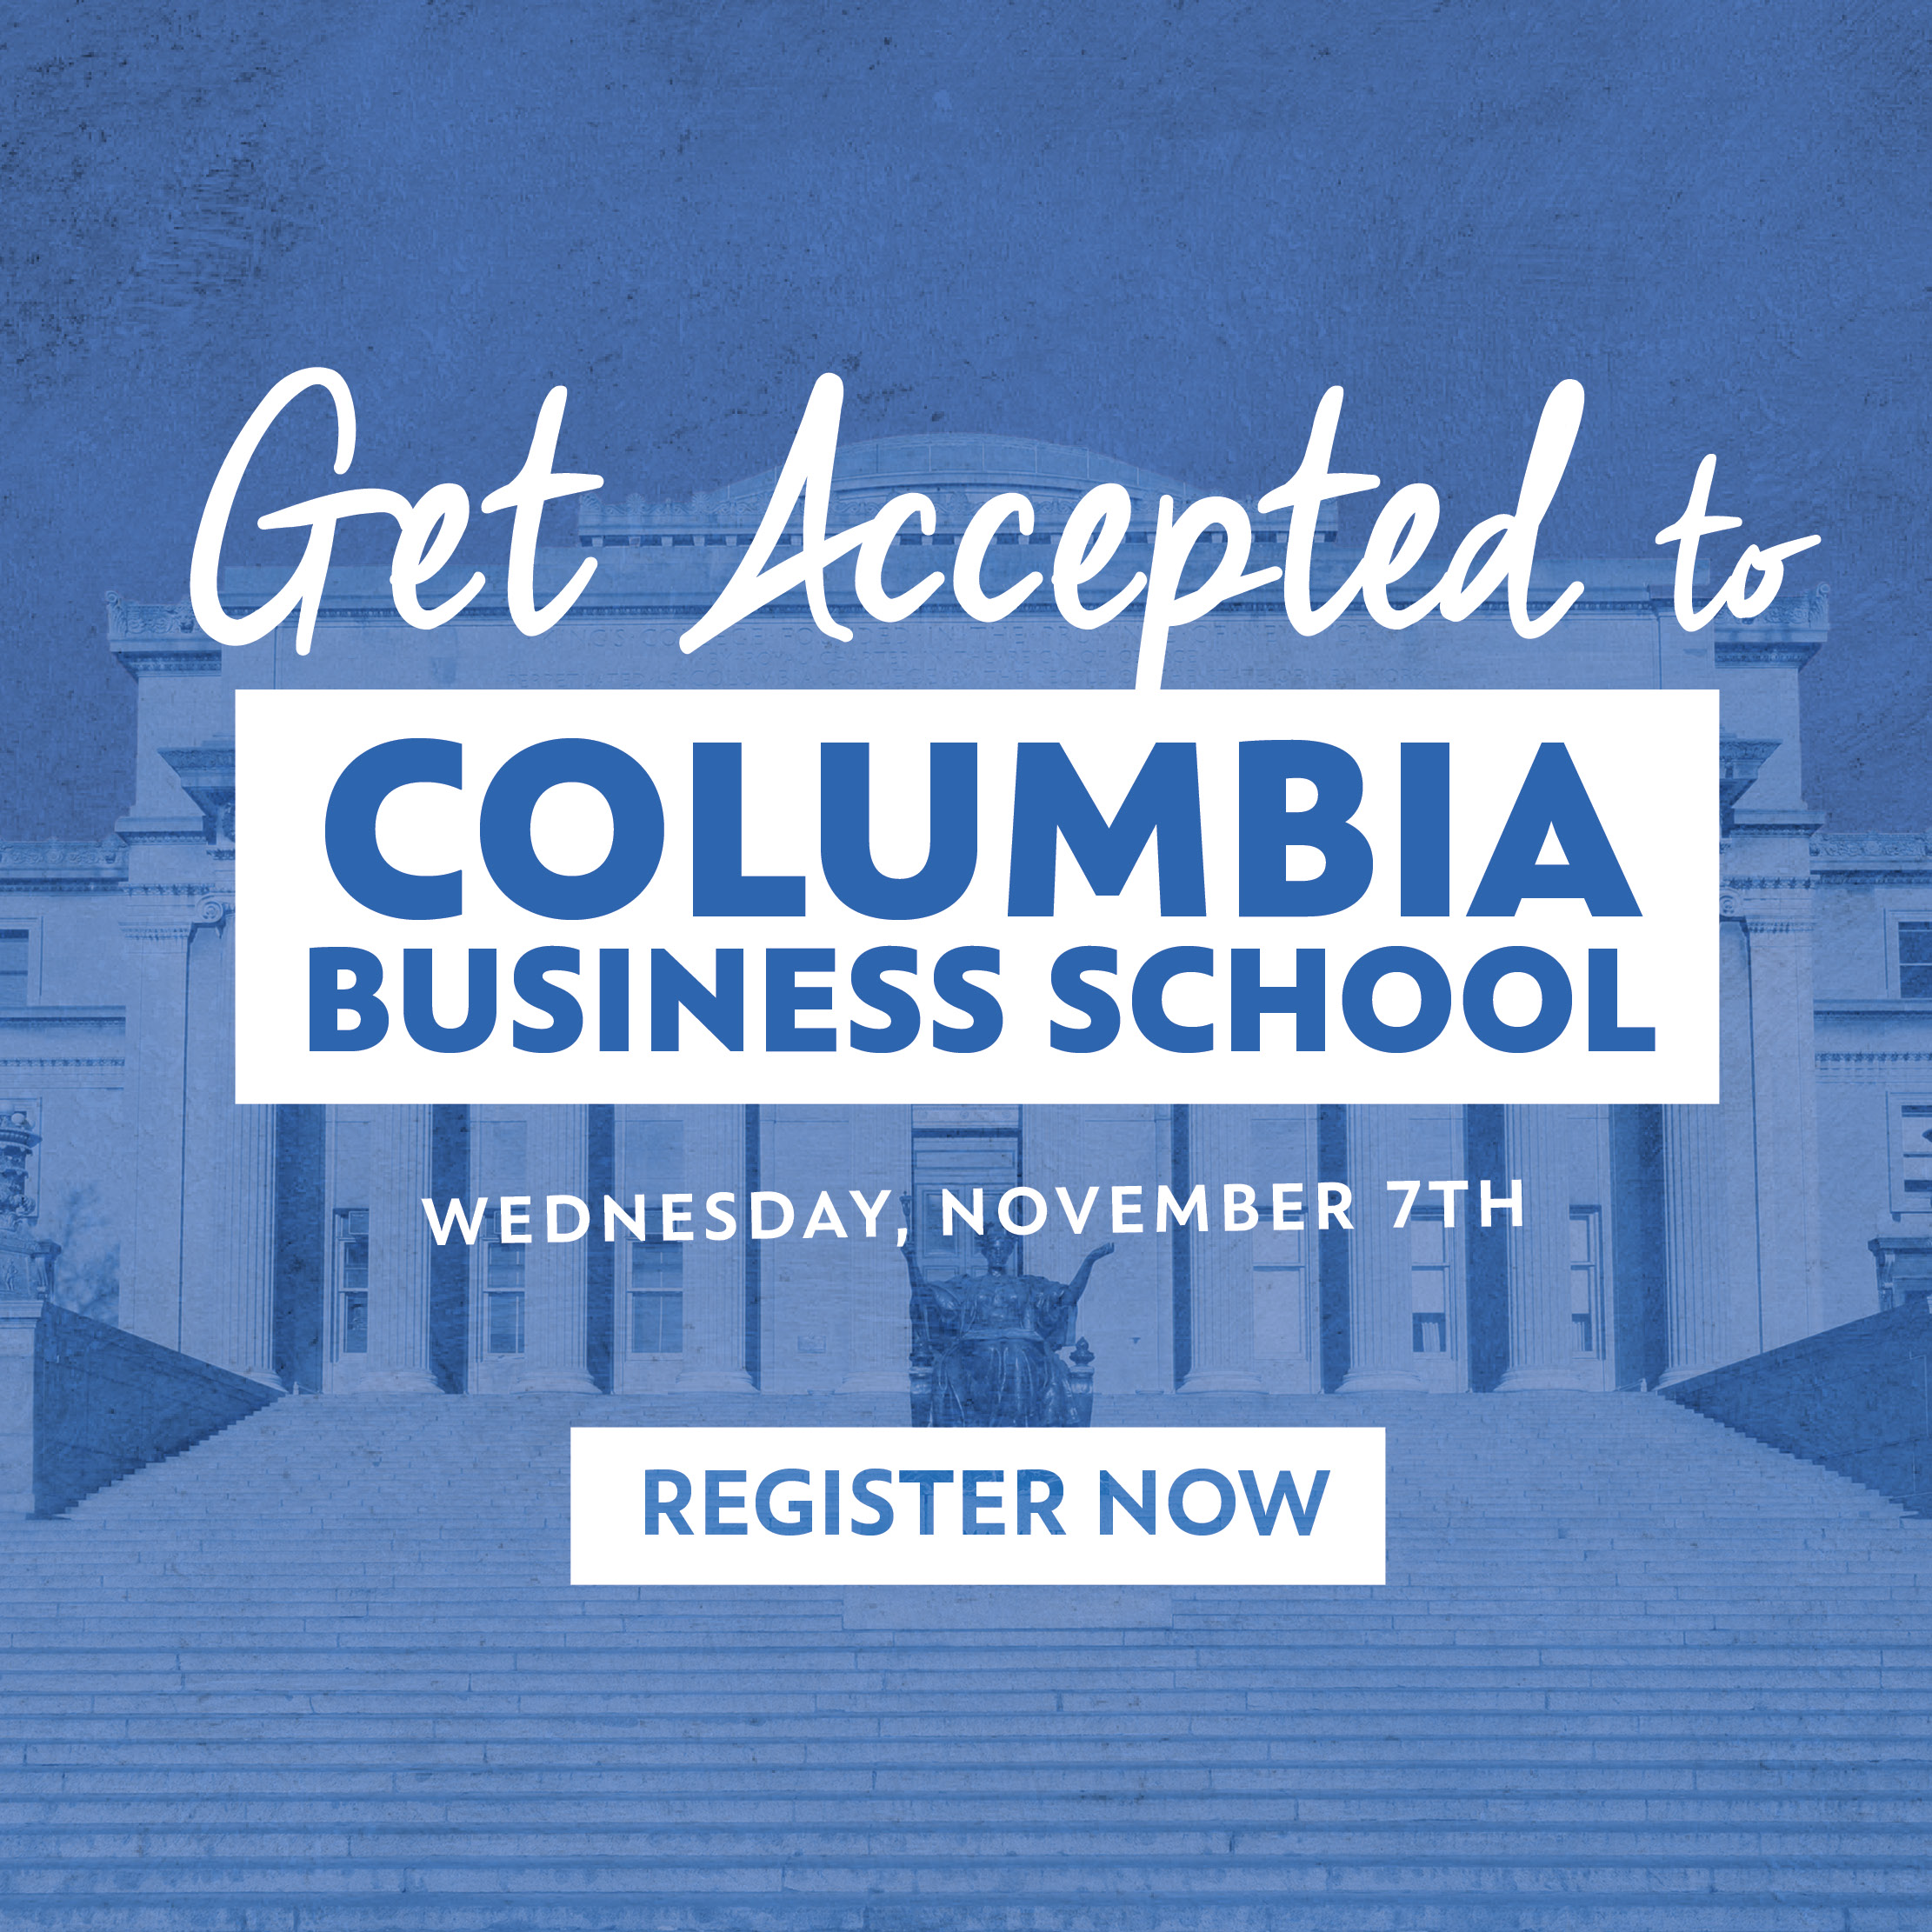 11.7.18 MBA CBS - Get Accepted to Columbia Business School_Square Register.jpg